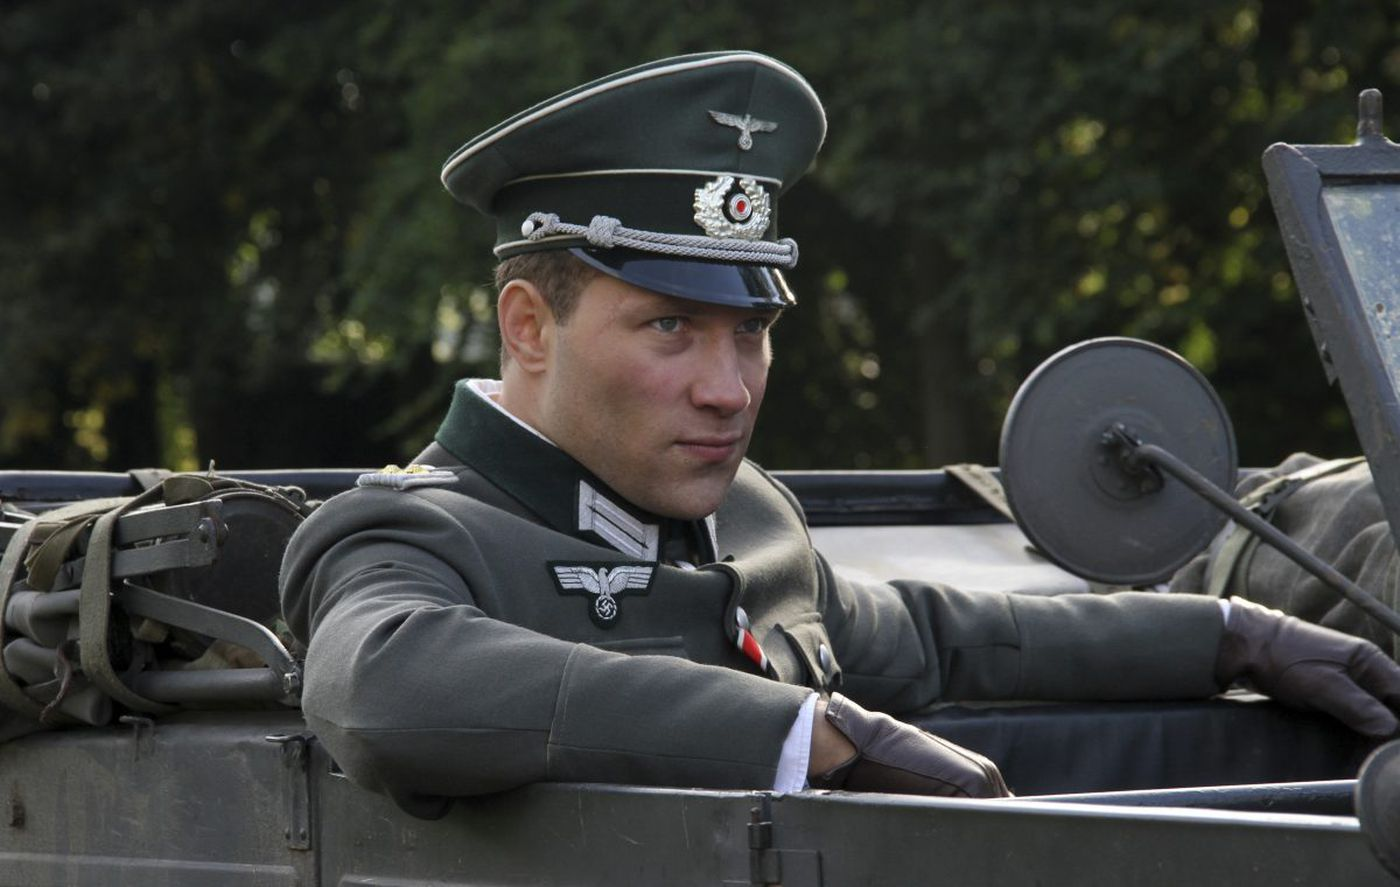 WWII drama 'The Exception' offers old-fashioned intrigue, romance